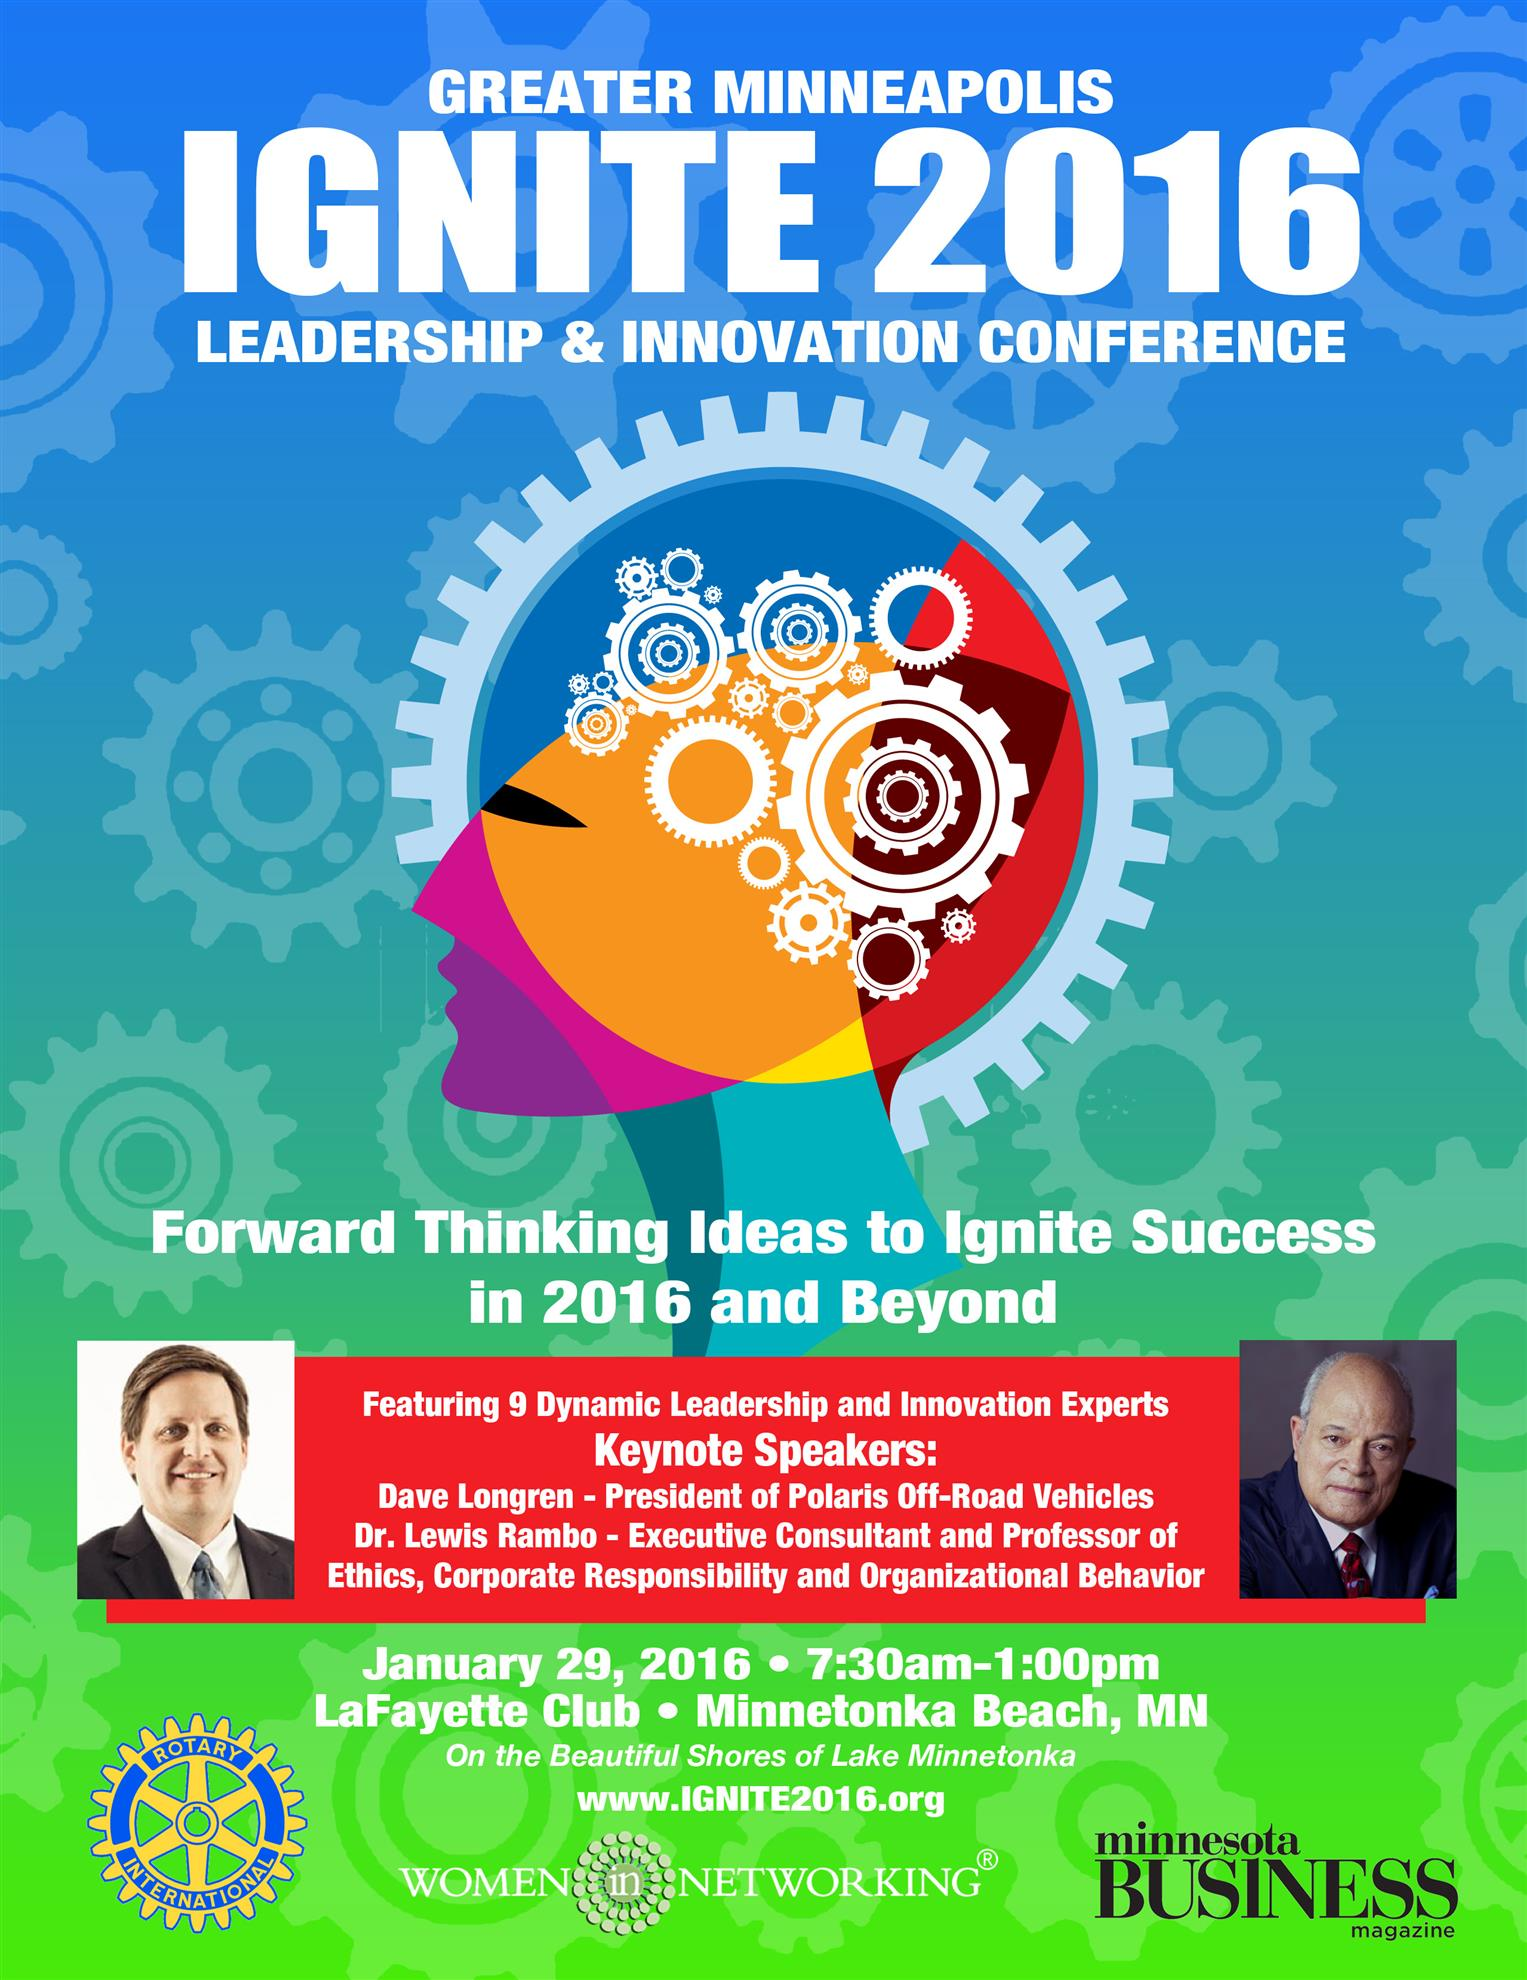 2017 05 a great miracle minnesota company - Ignite 2016 Conference